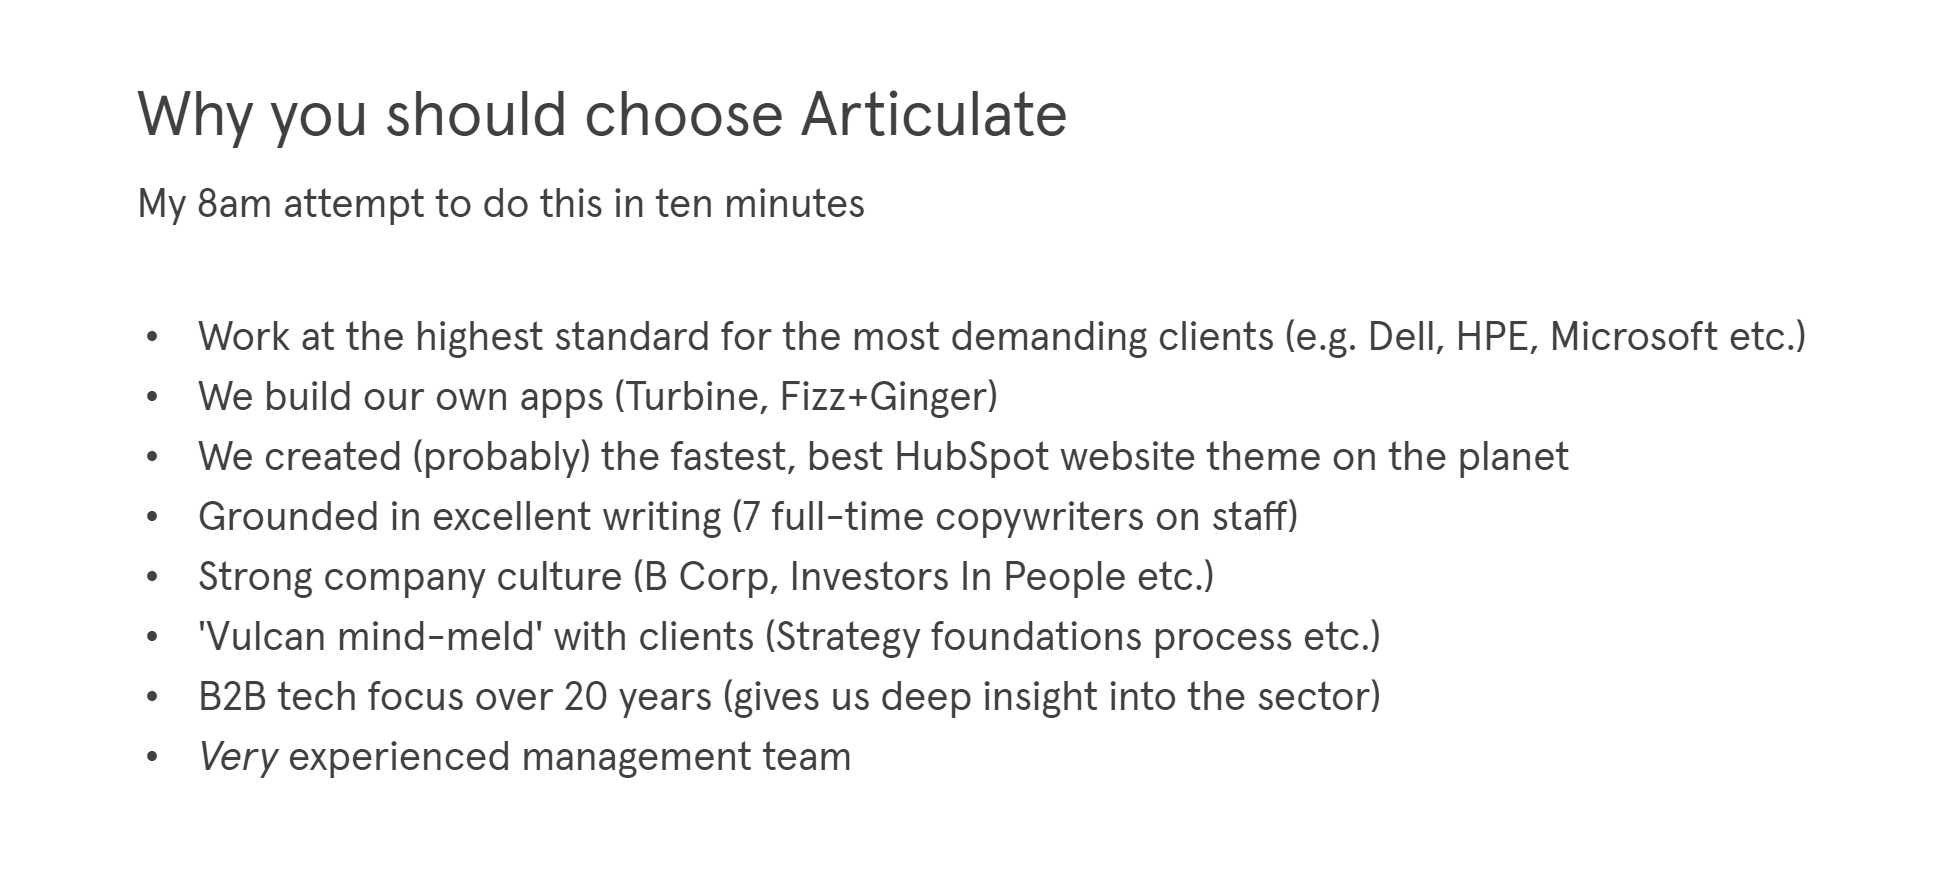 An example of a 'shitty first draft' for why you should choose Articulate marketing